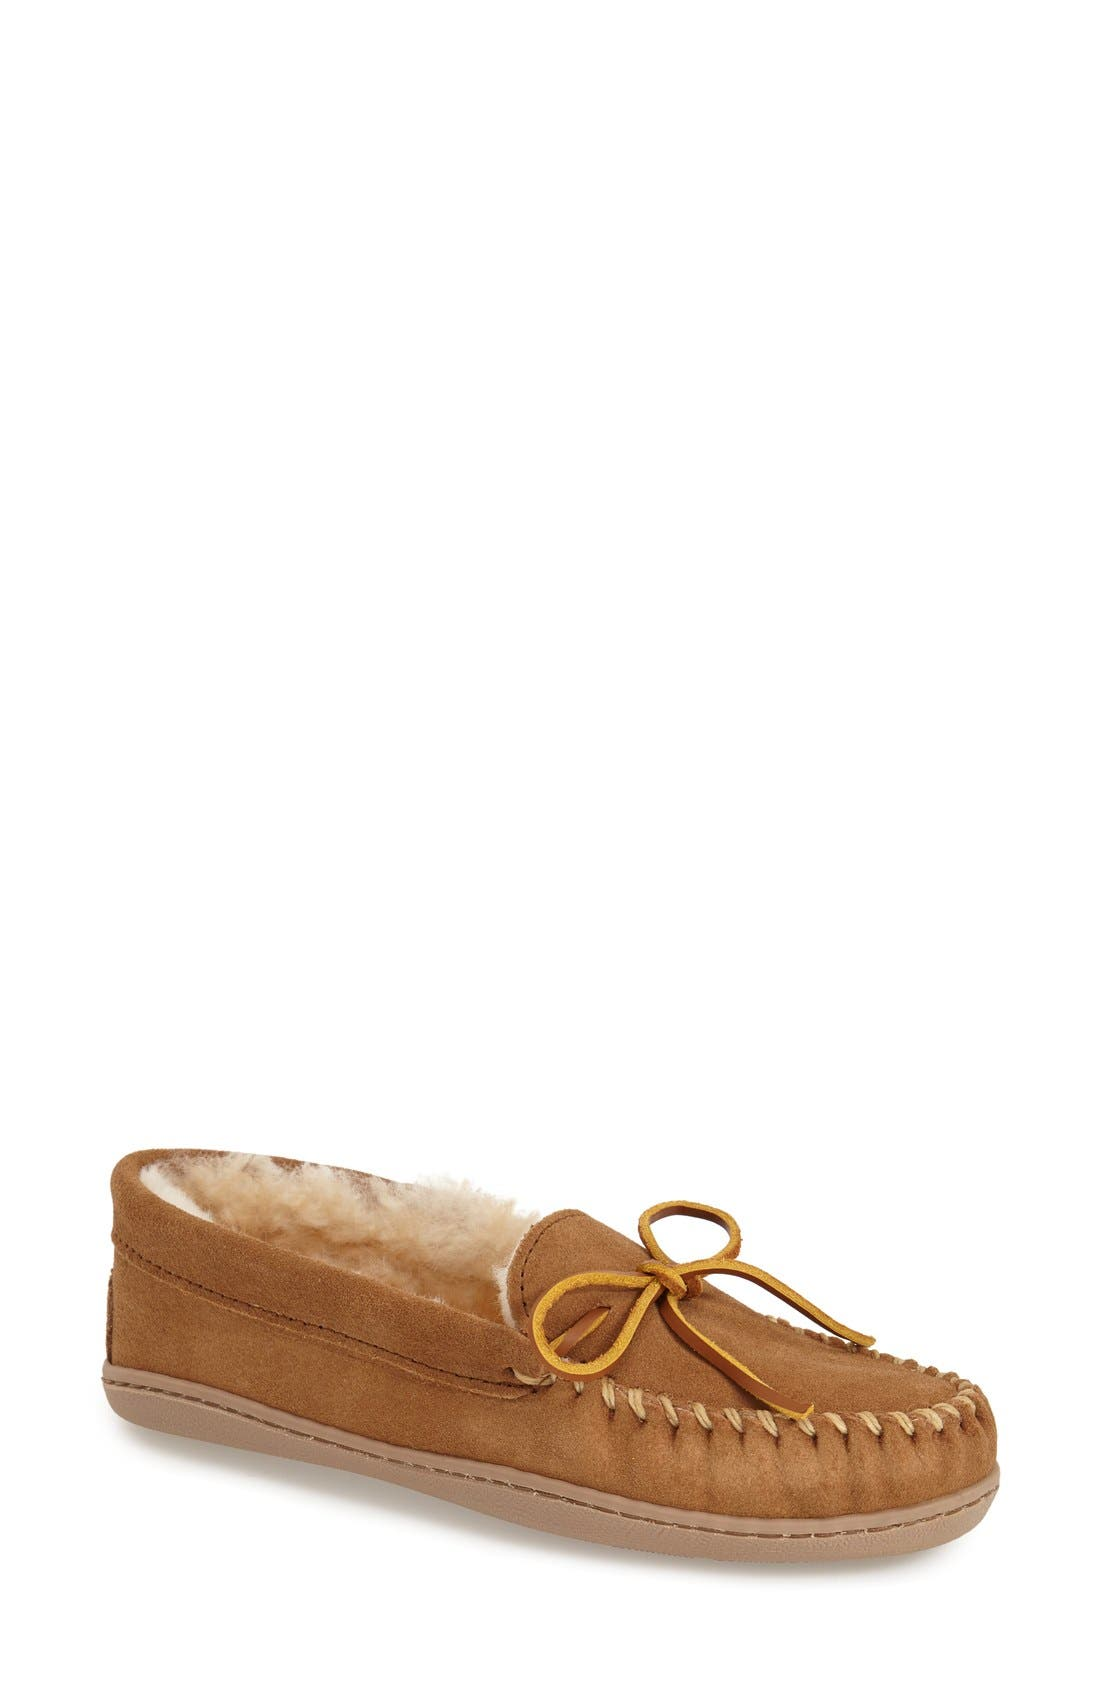 MINNETONKA, Sheepskin Hard Sole Moccasin Slipper, Main thumbnail 1, color, TAN SUEDE